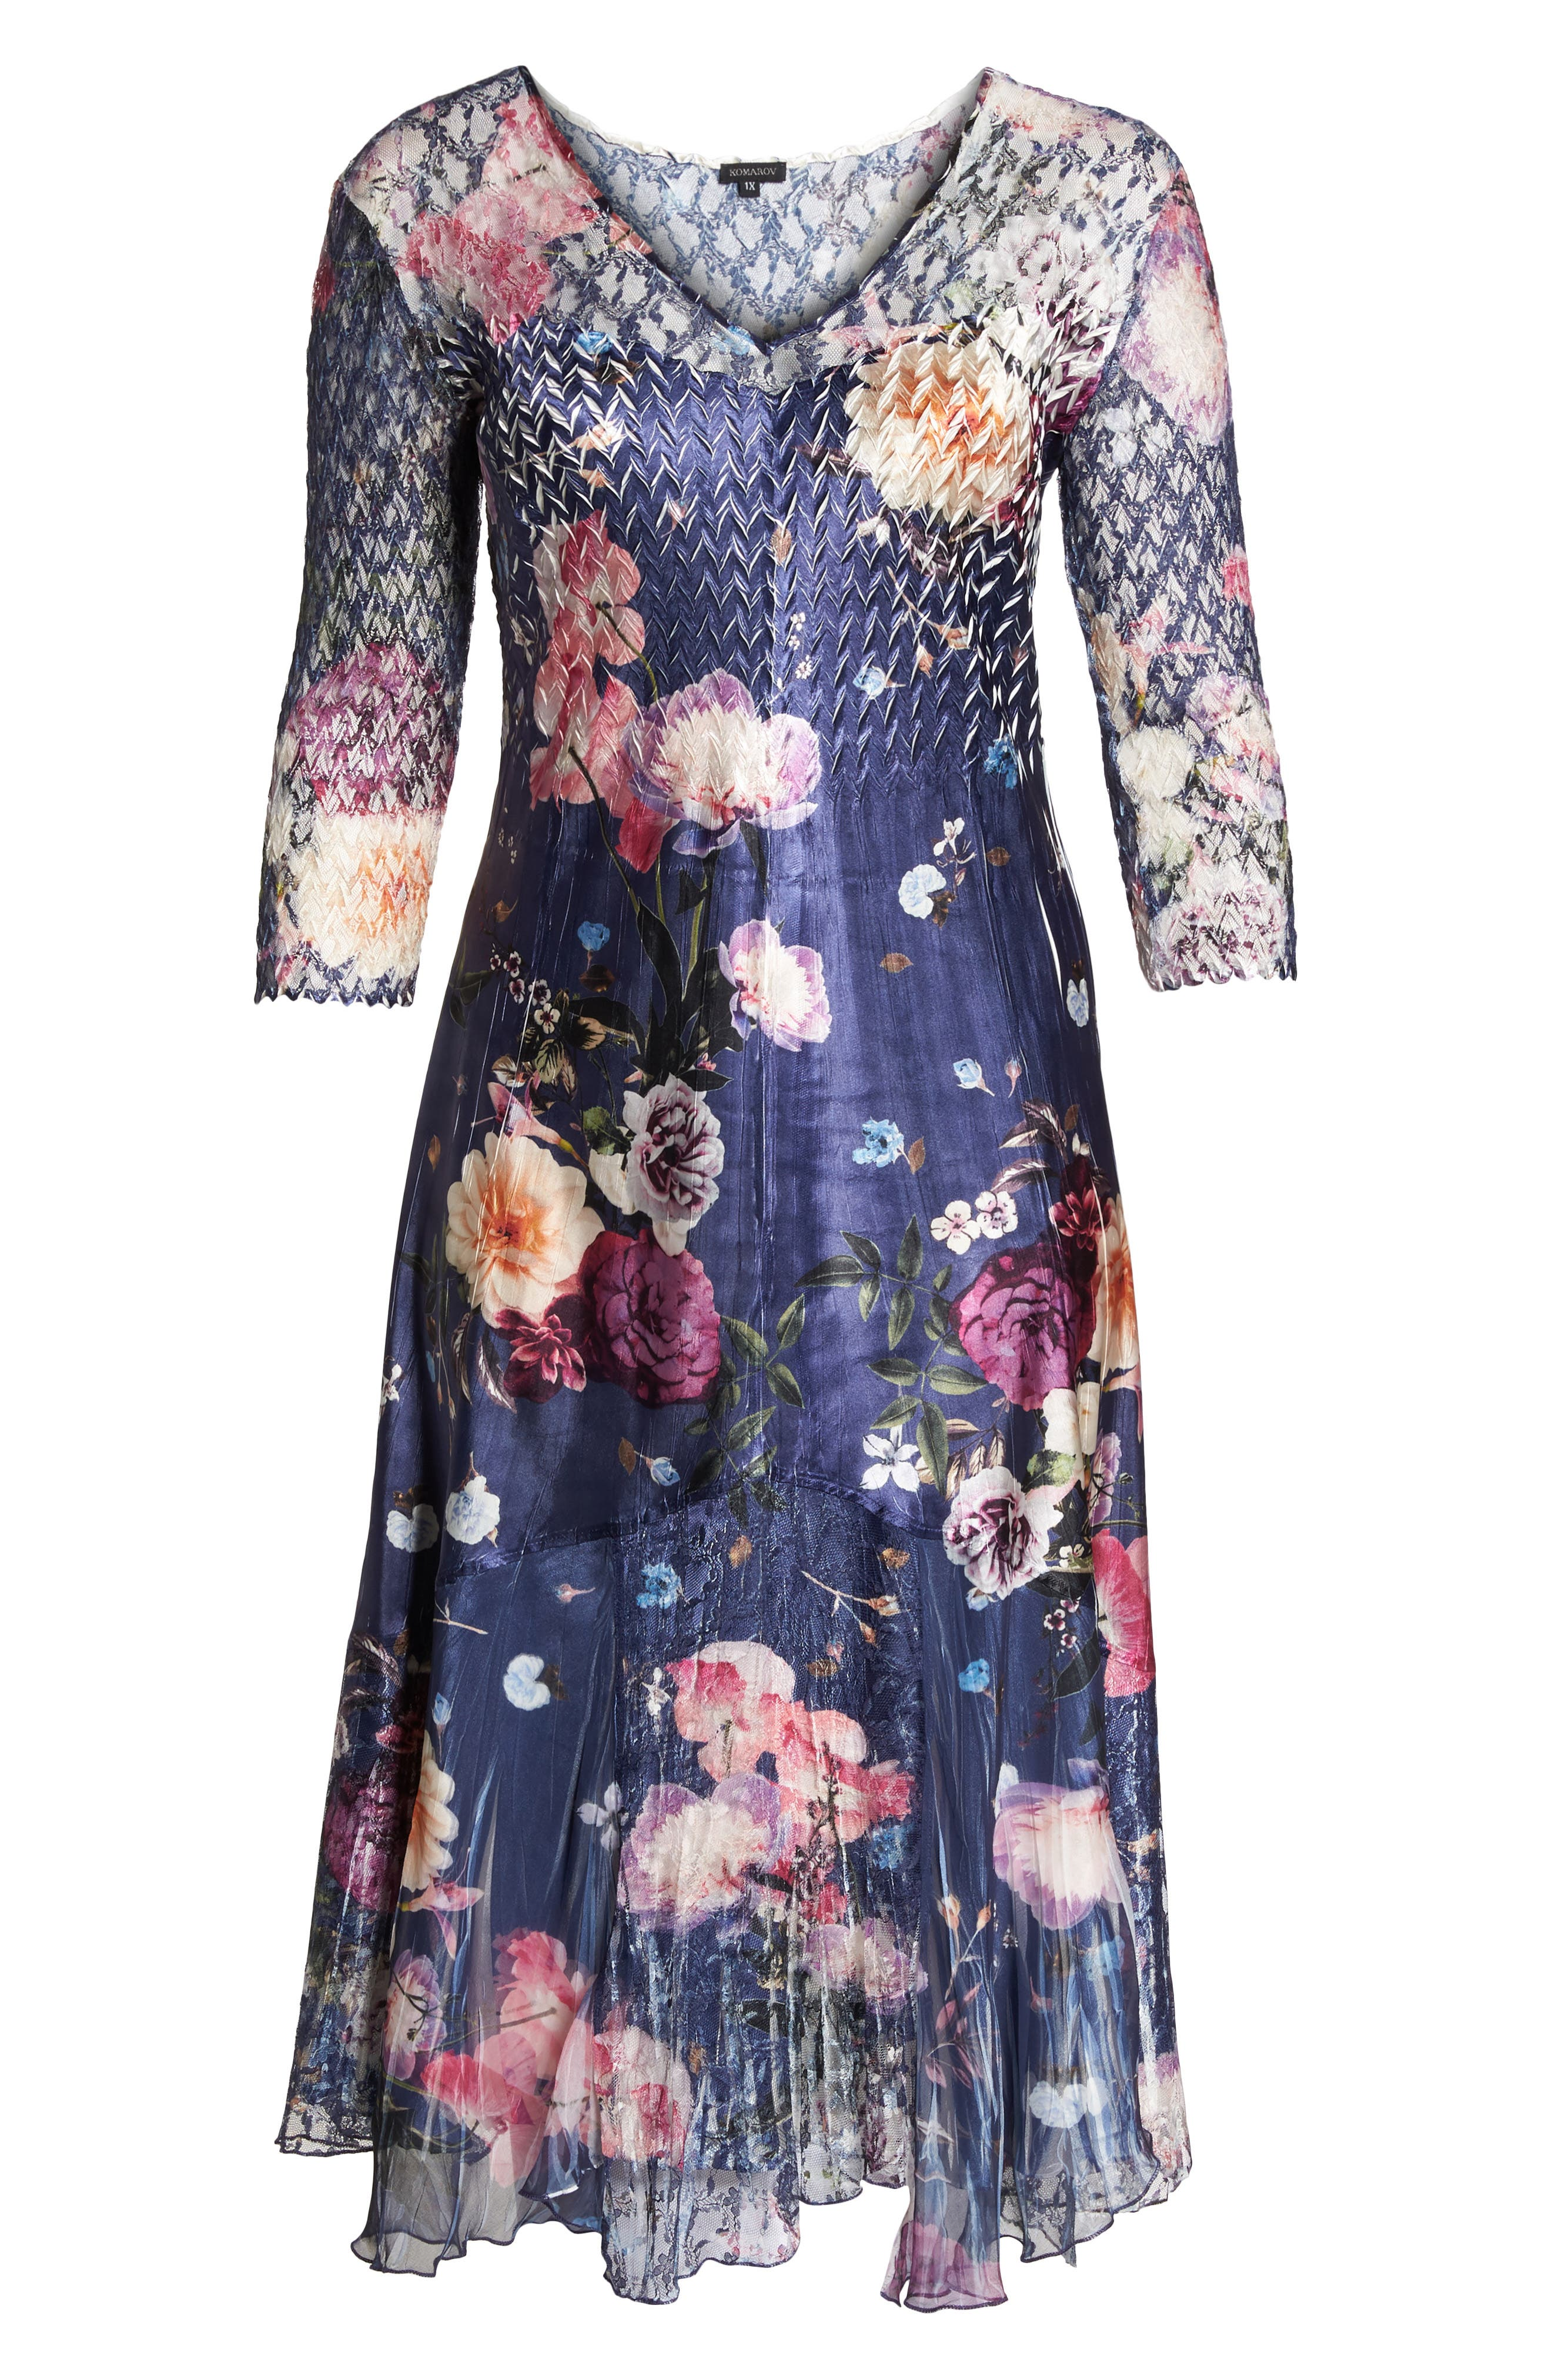 Koramov Floral Print Lace Inset Dress,                             Alternate thumbnail 6, color,                             Velvet Bouquet